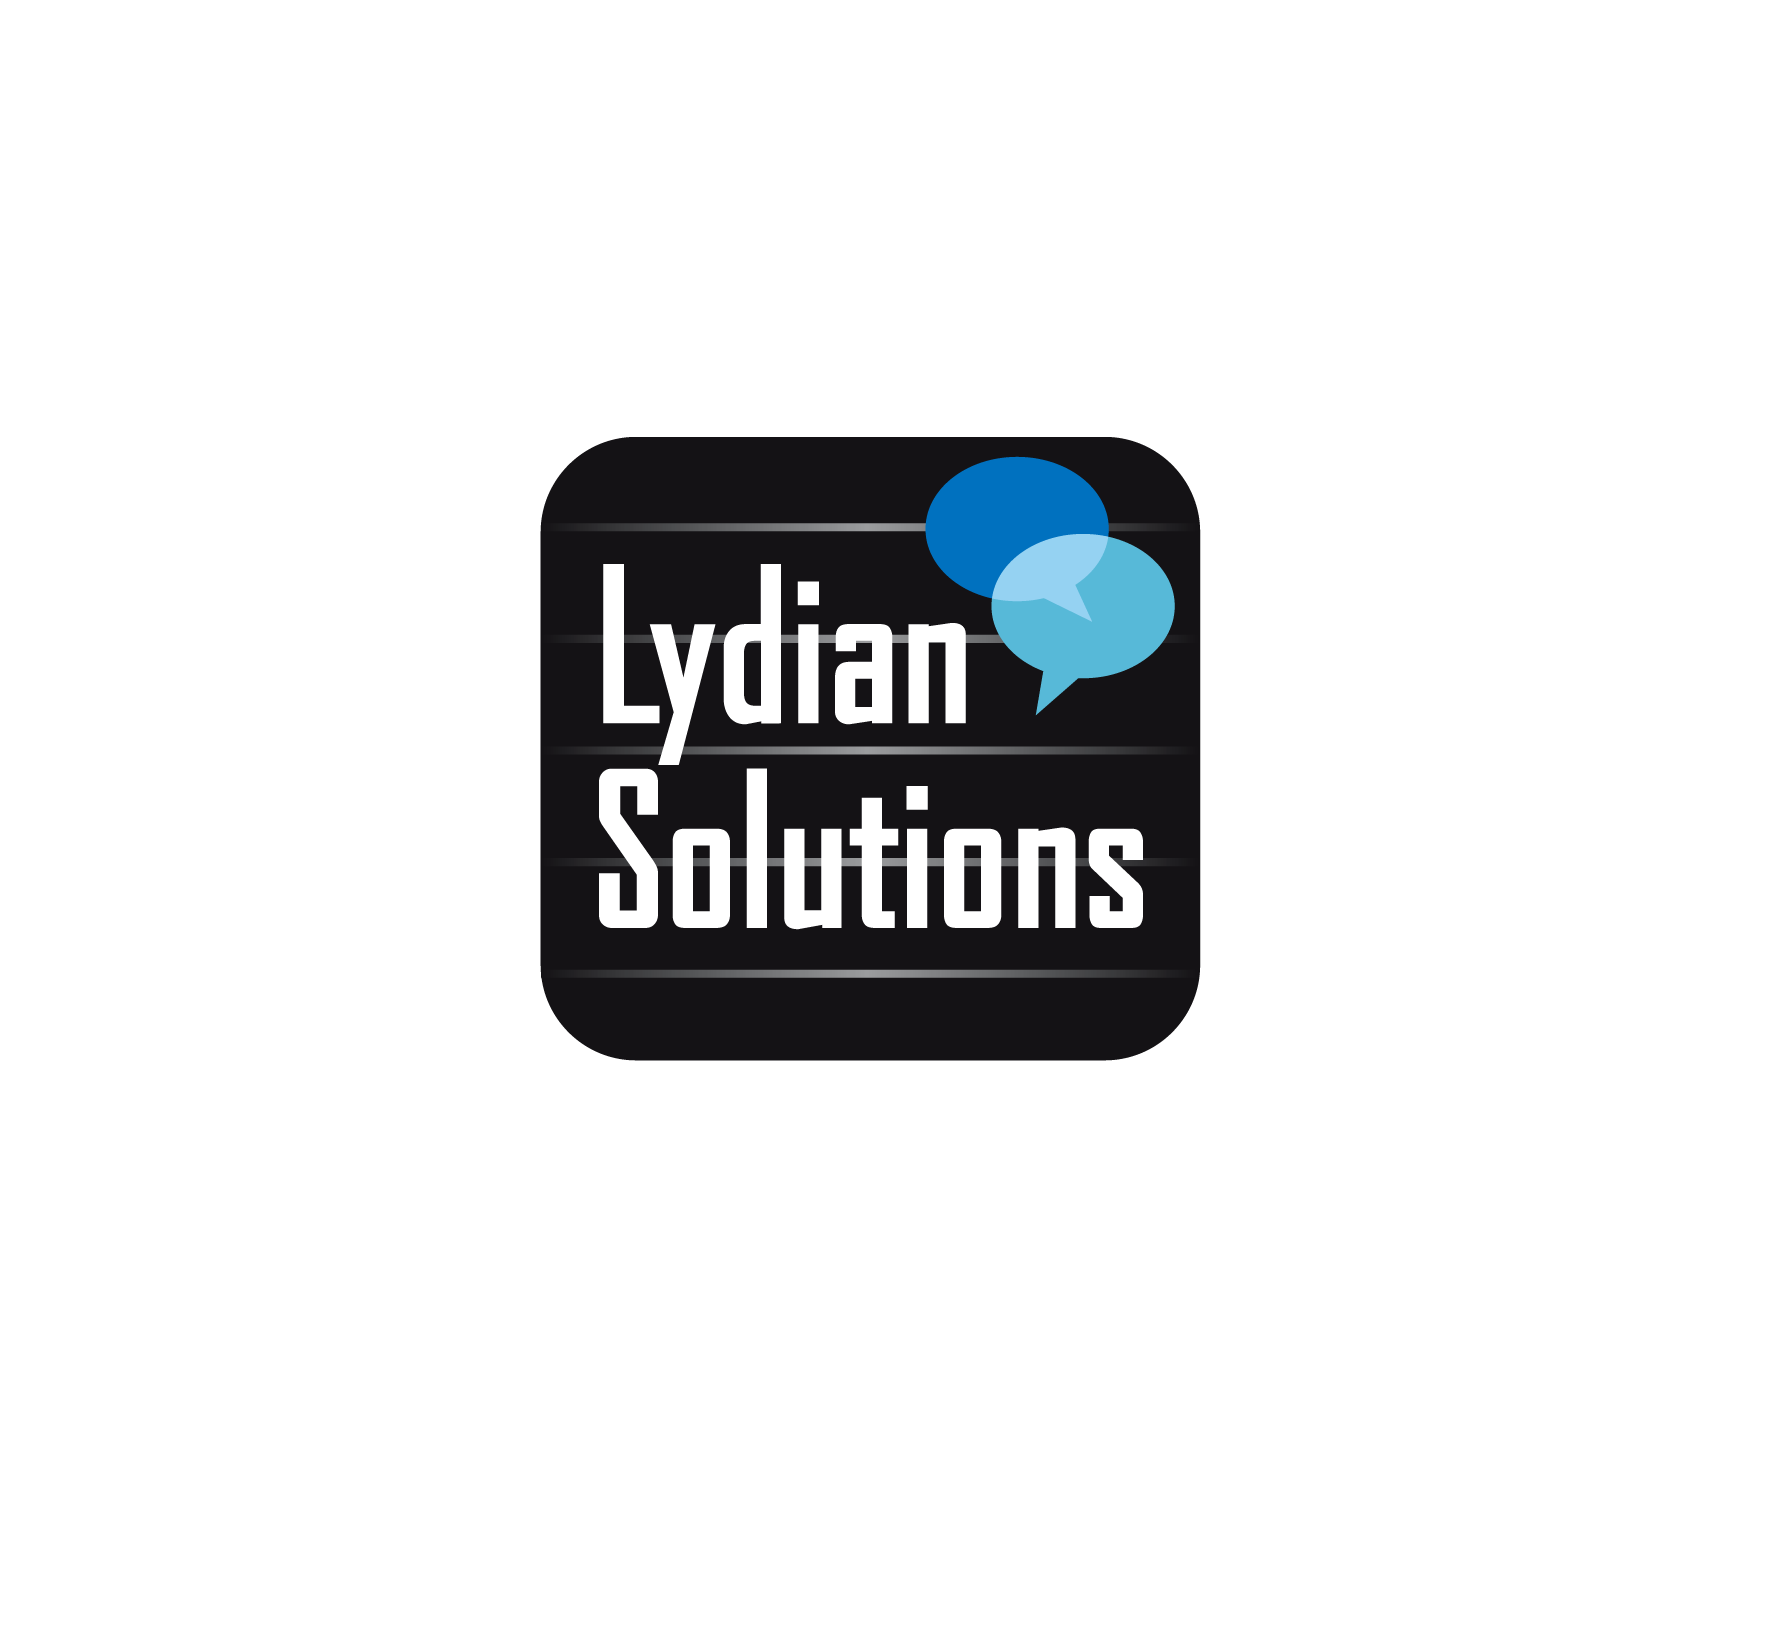 Logo Design by luna - Entry No. 110 in the Logo Design Contest Fun Logo Design for Lydian Solutions.